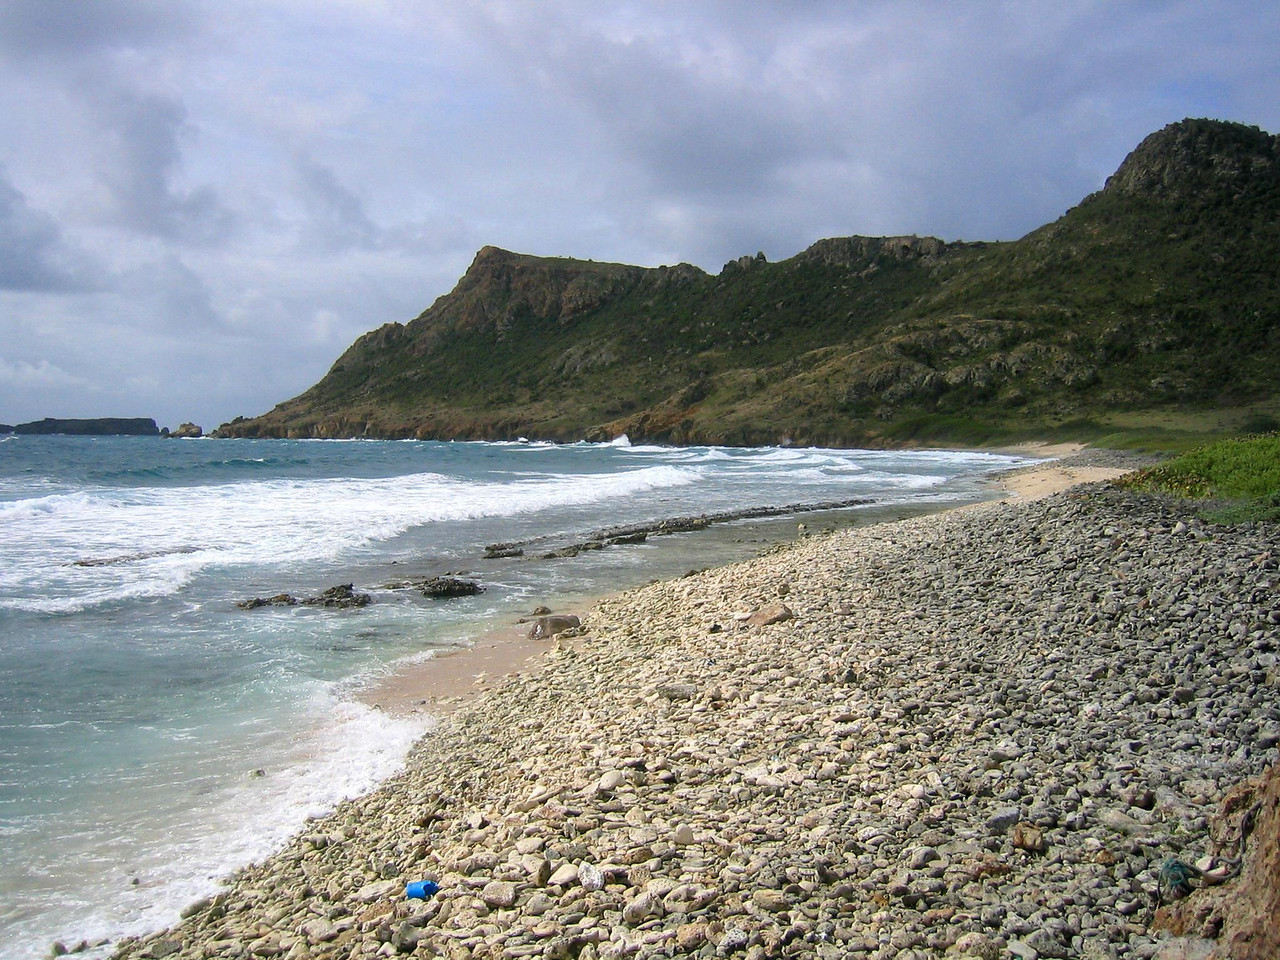 The, uh, er, beach at Grand Fond. We do not consider it swimmable, but this is the starting point for a hike to Morne Rouge and a view overlooking Saline Beach. (geotagged)